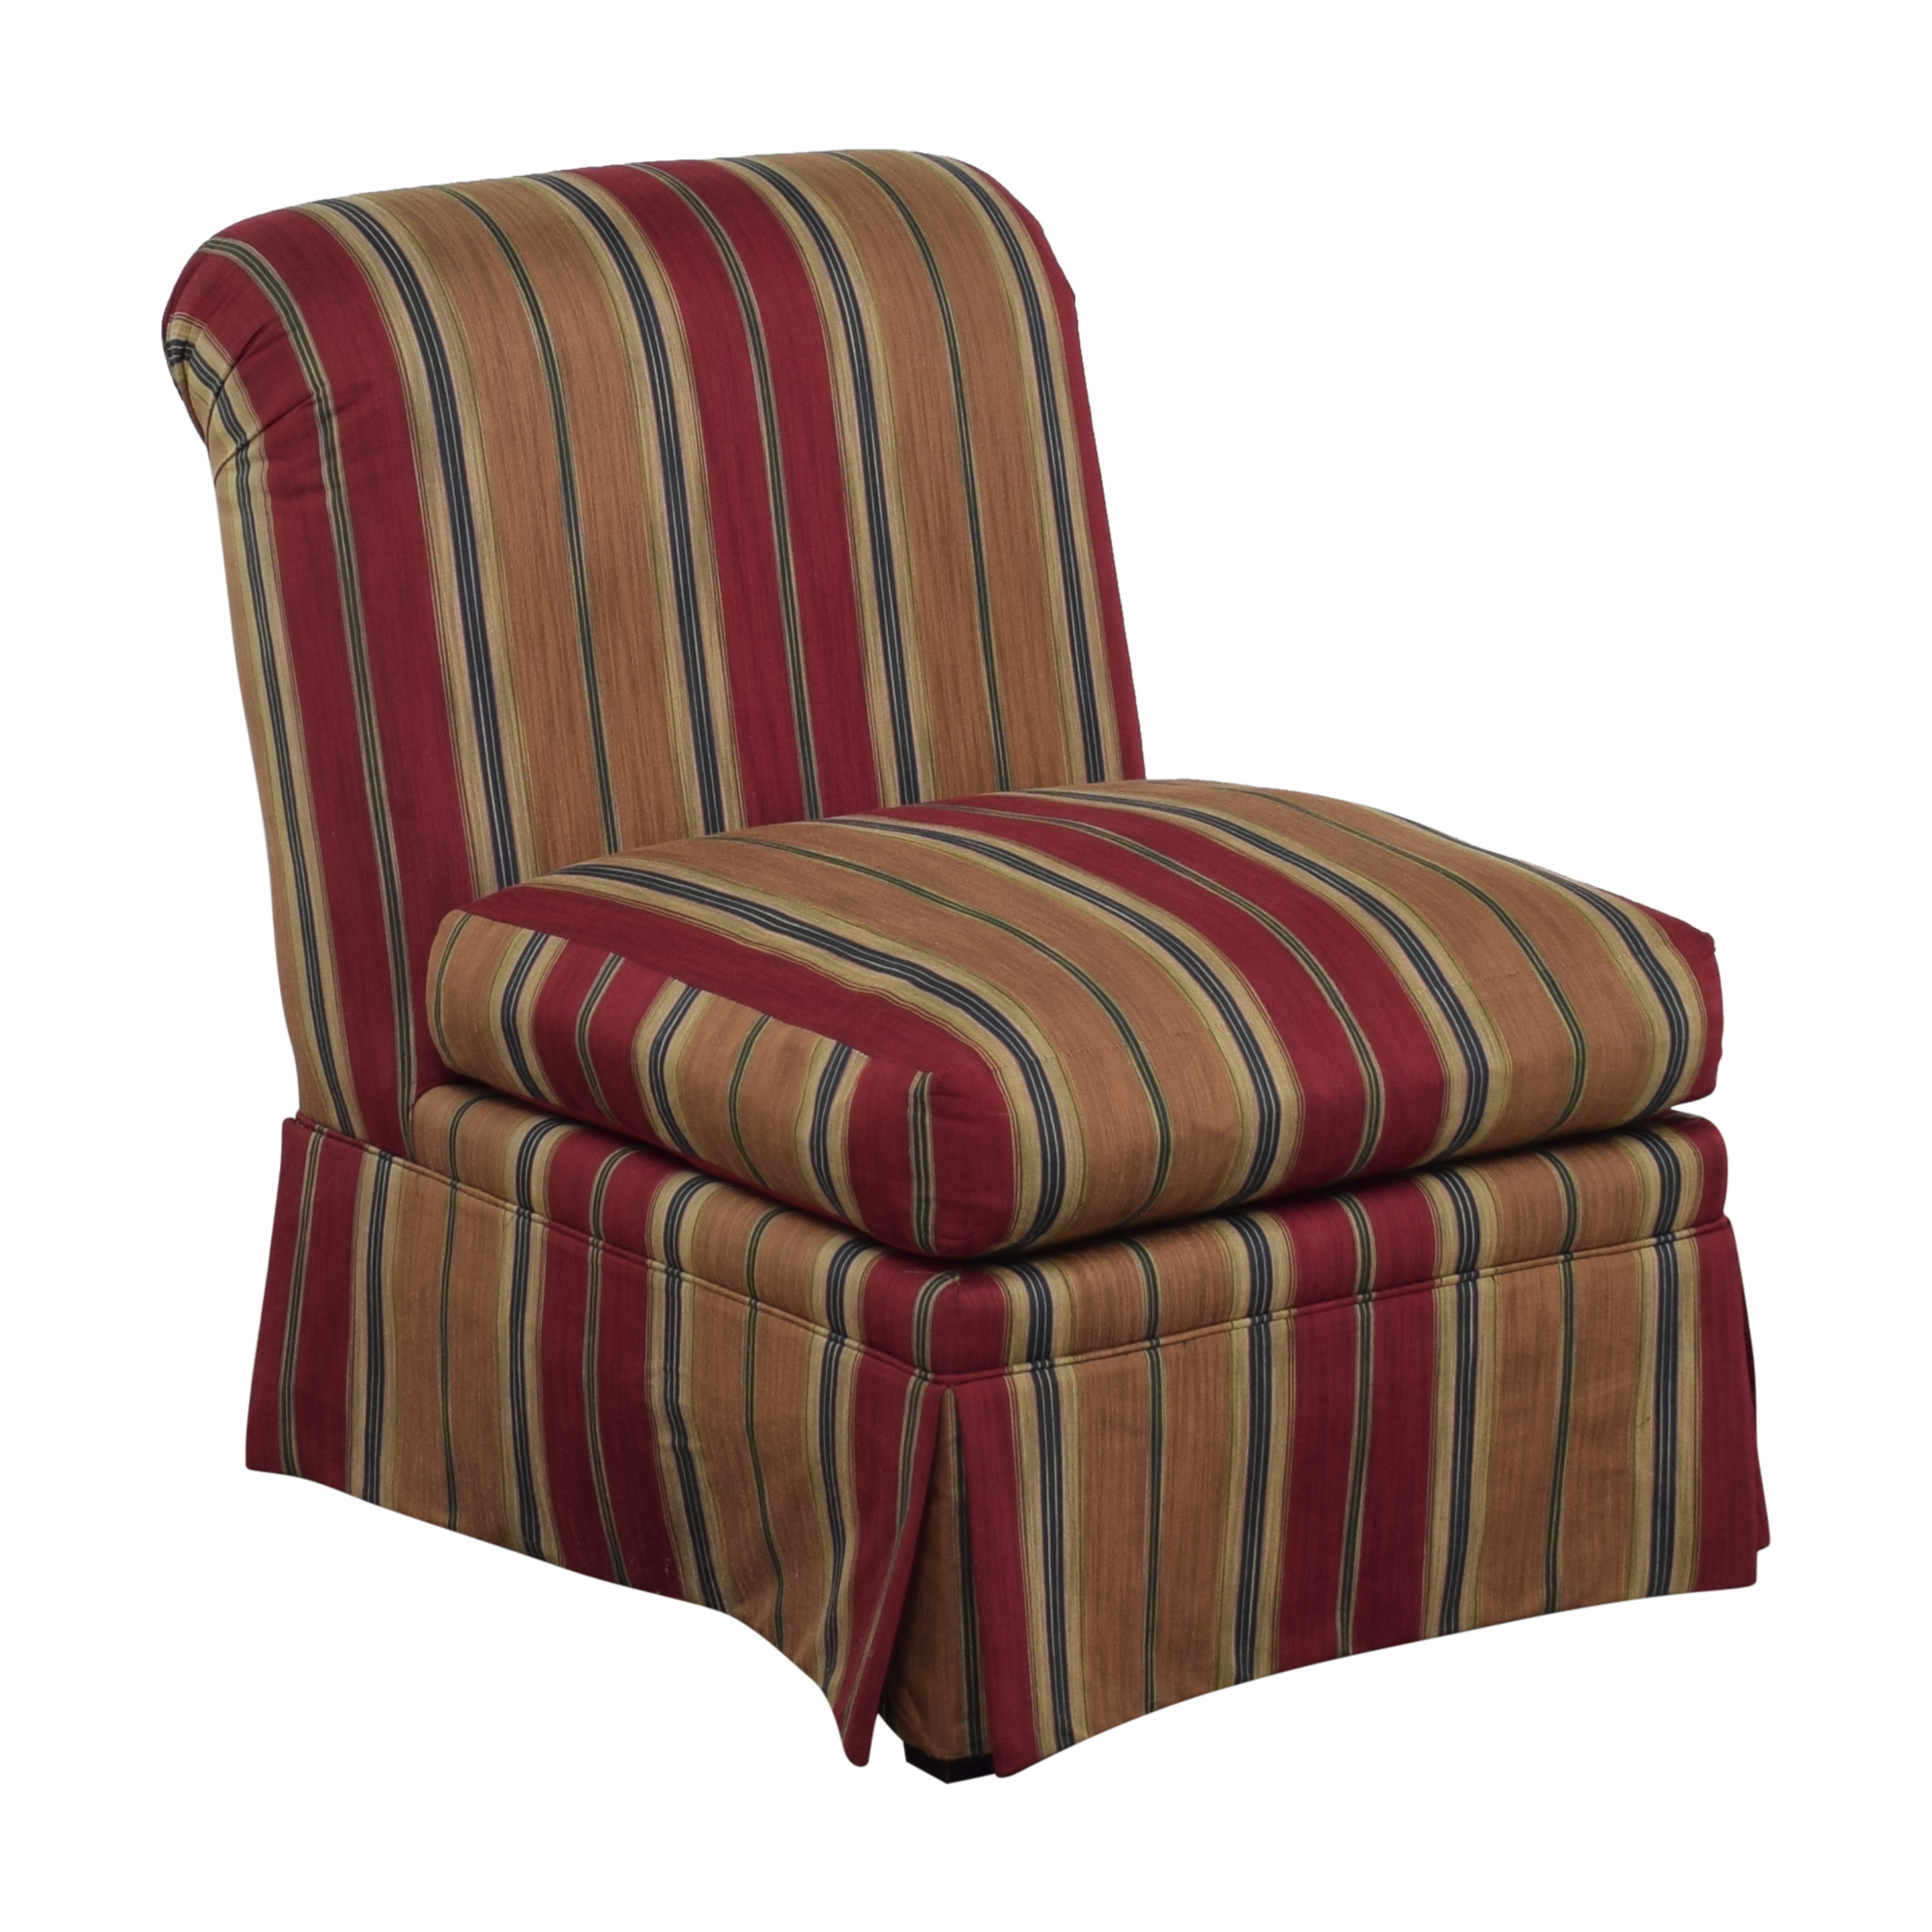 J. Royale Furniture J. Royale Furniture Upholstered Armless Chair second hand